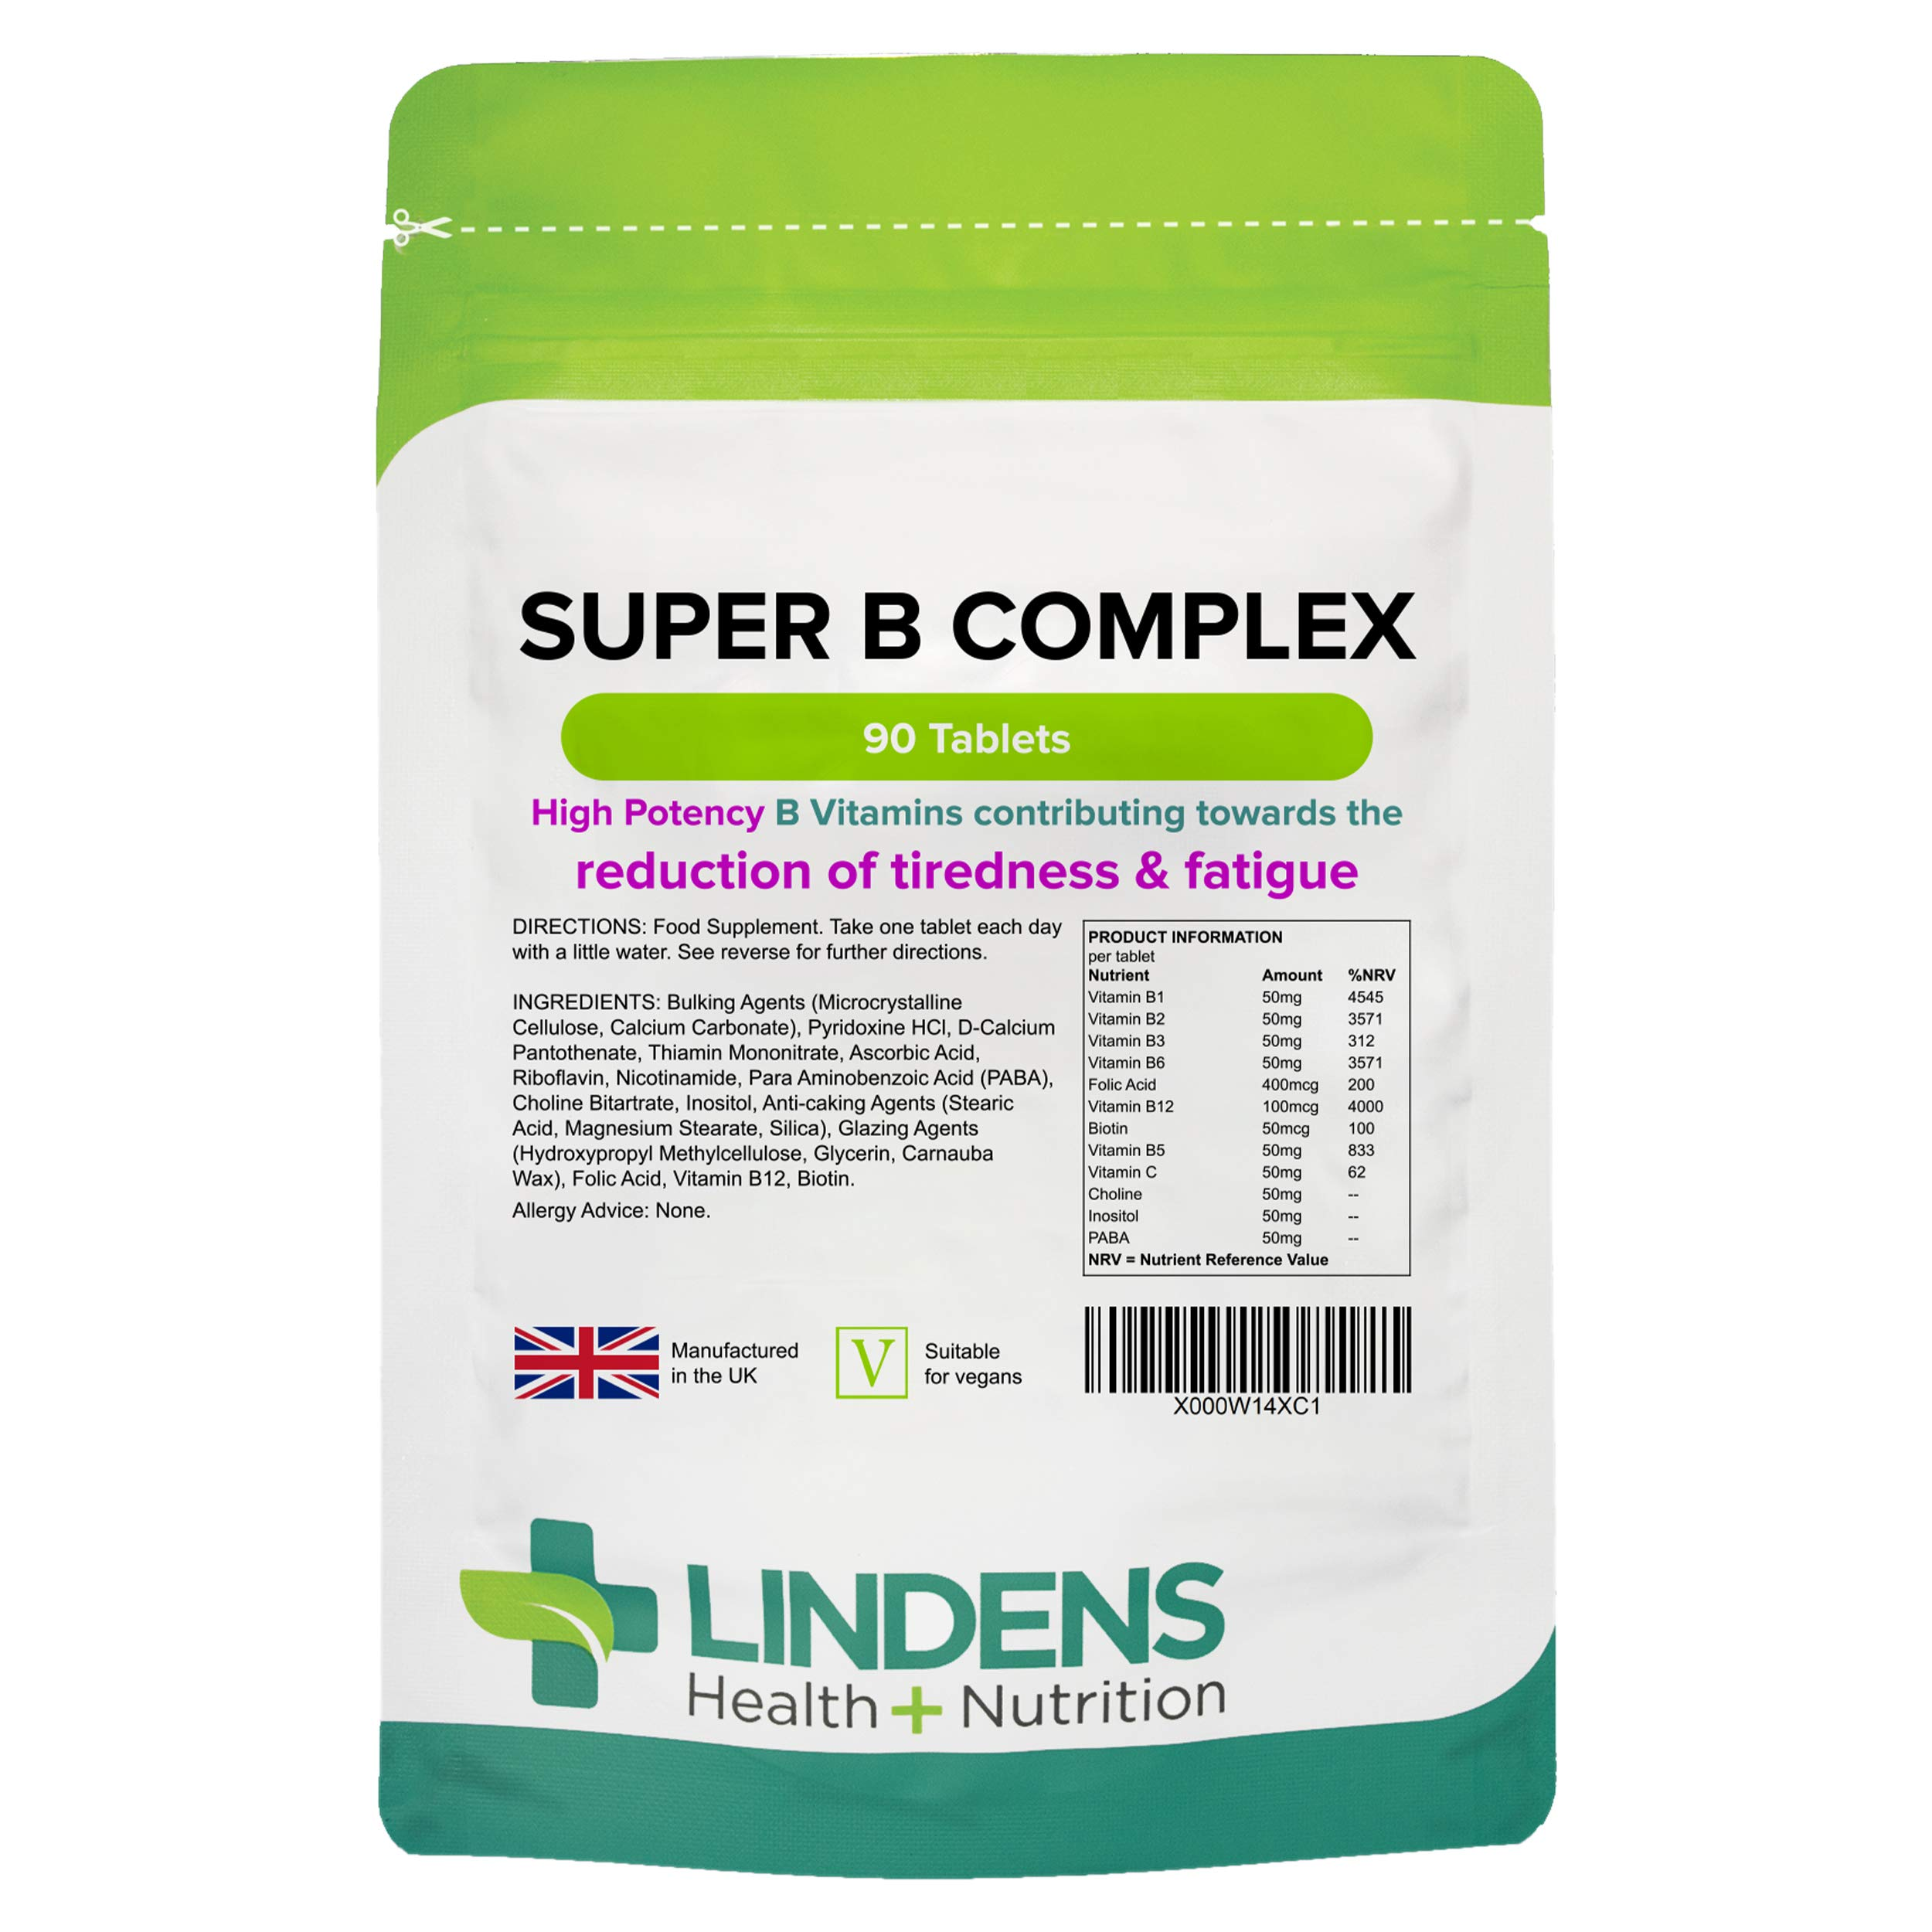 Lindens Super B Complex Vitamin Tablets with a Full Spectrum of B Vitamins and Vitamin C - Reduces Tiredness and Fatigue - 90 Tablets